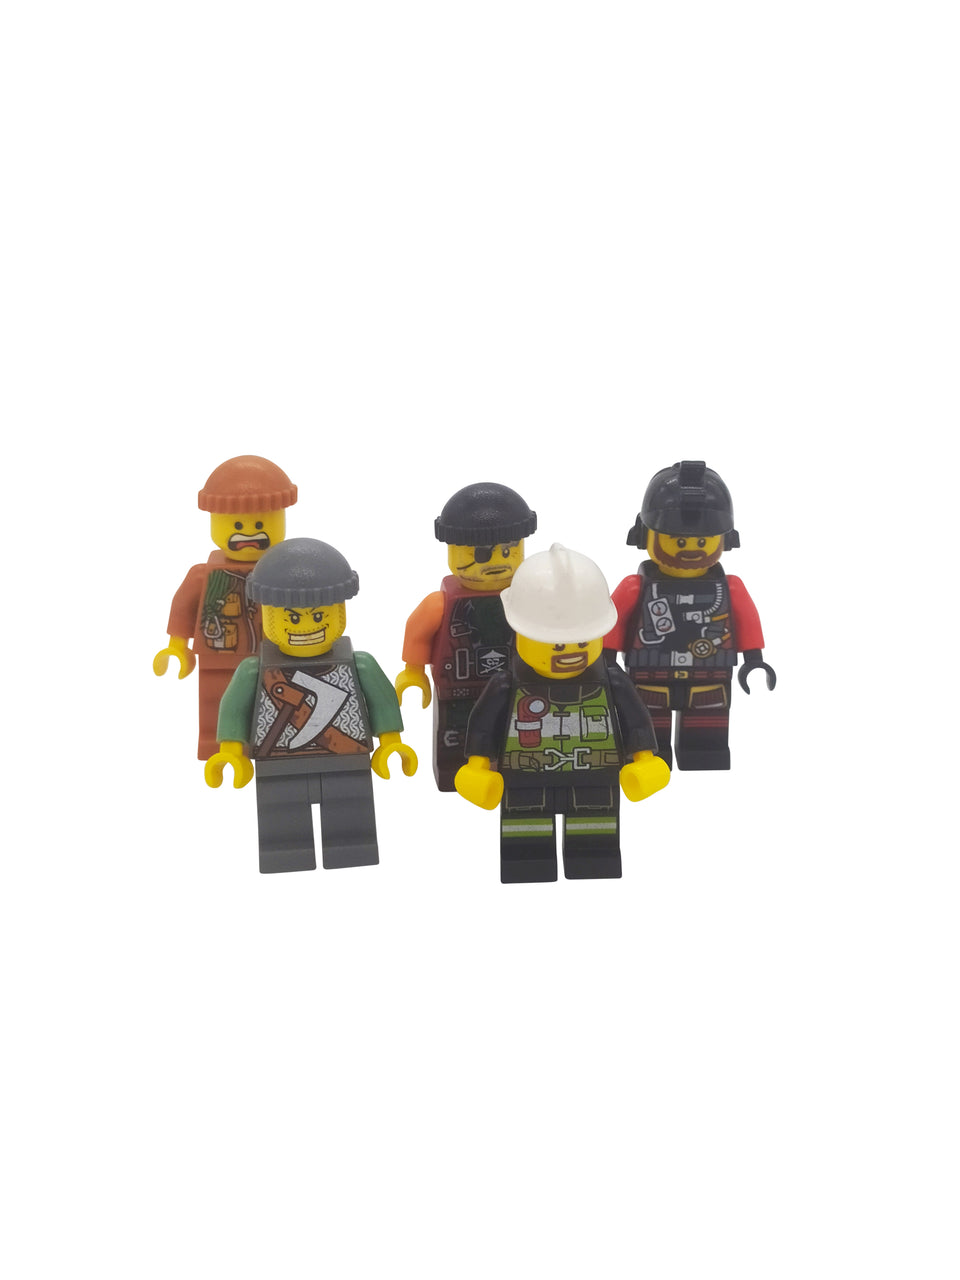 5 lot of Lego special Minifigures #3